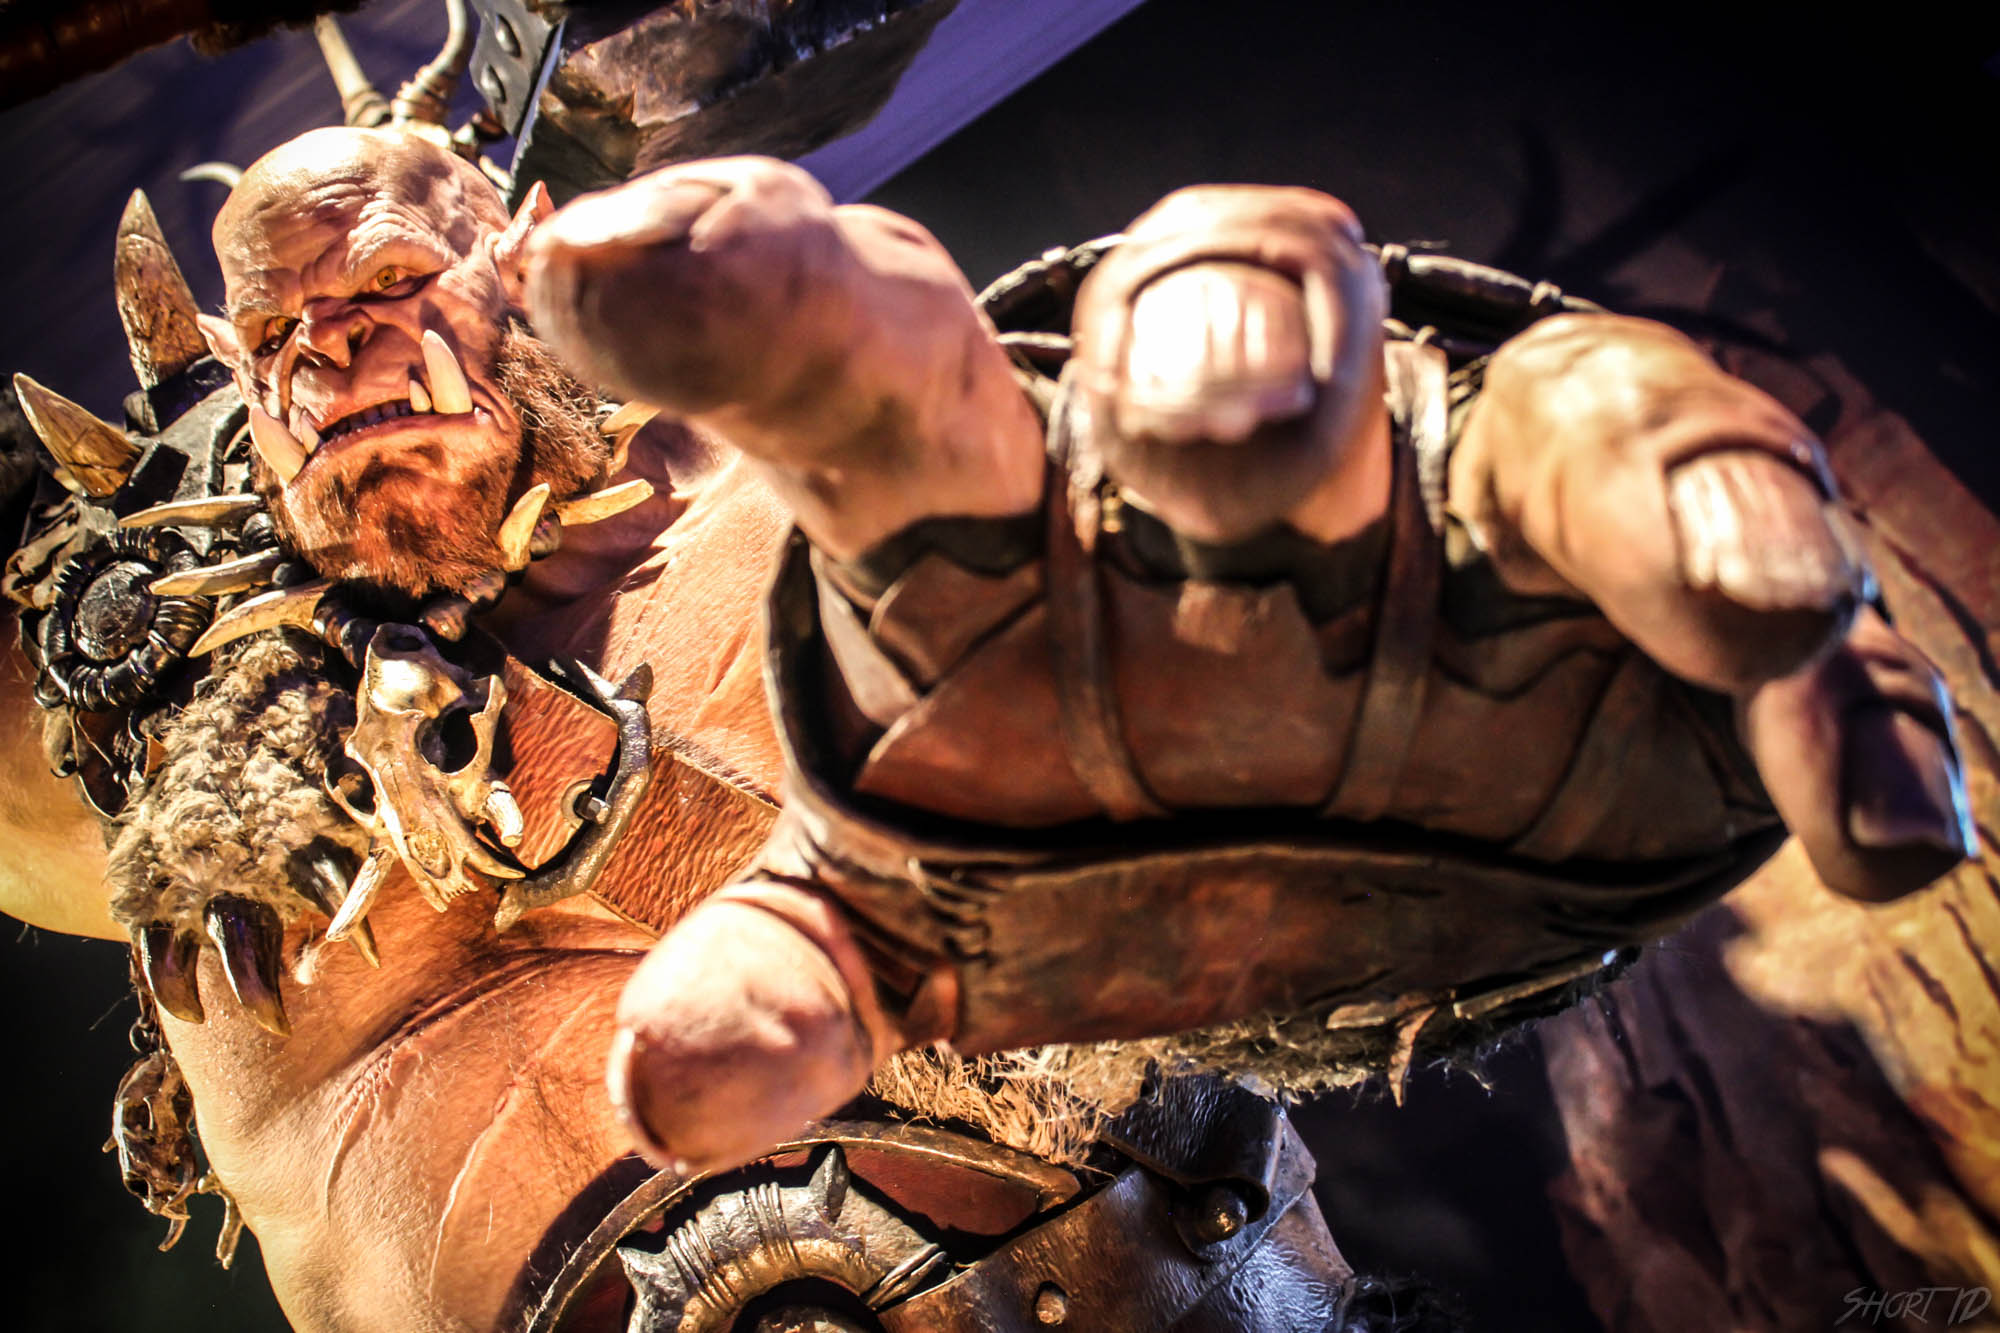 Gamescome 2015 - Statue Film Warcraft 2